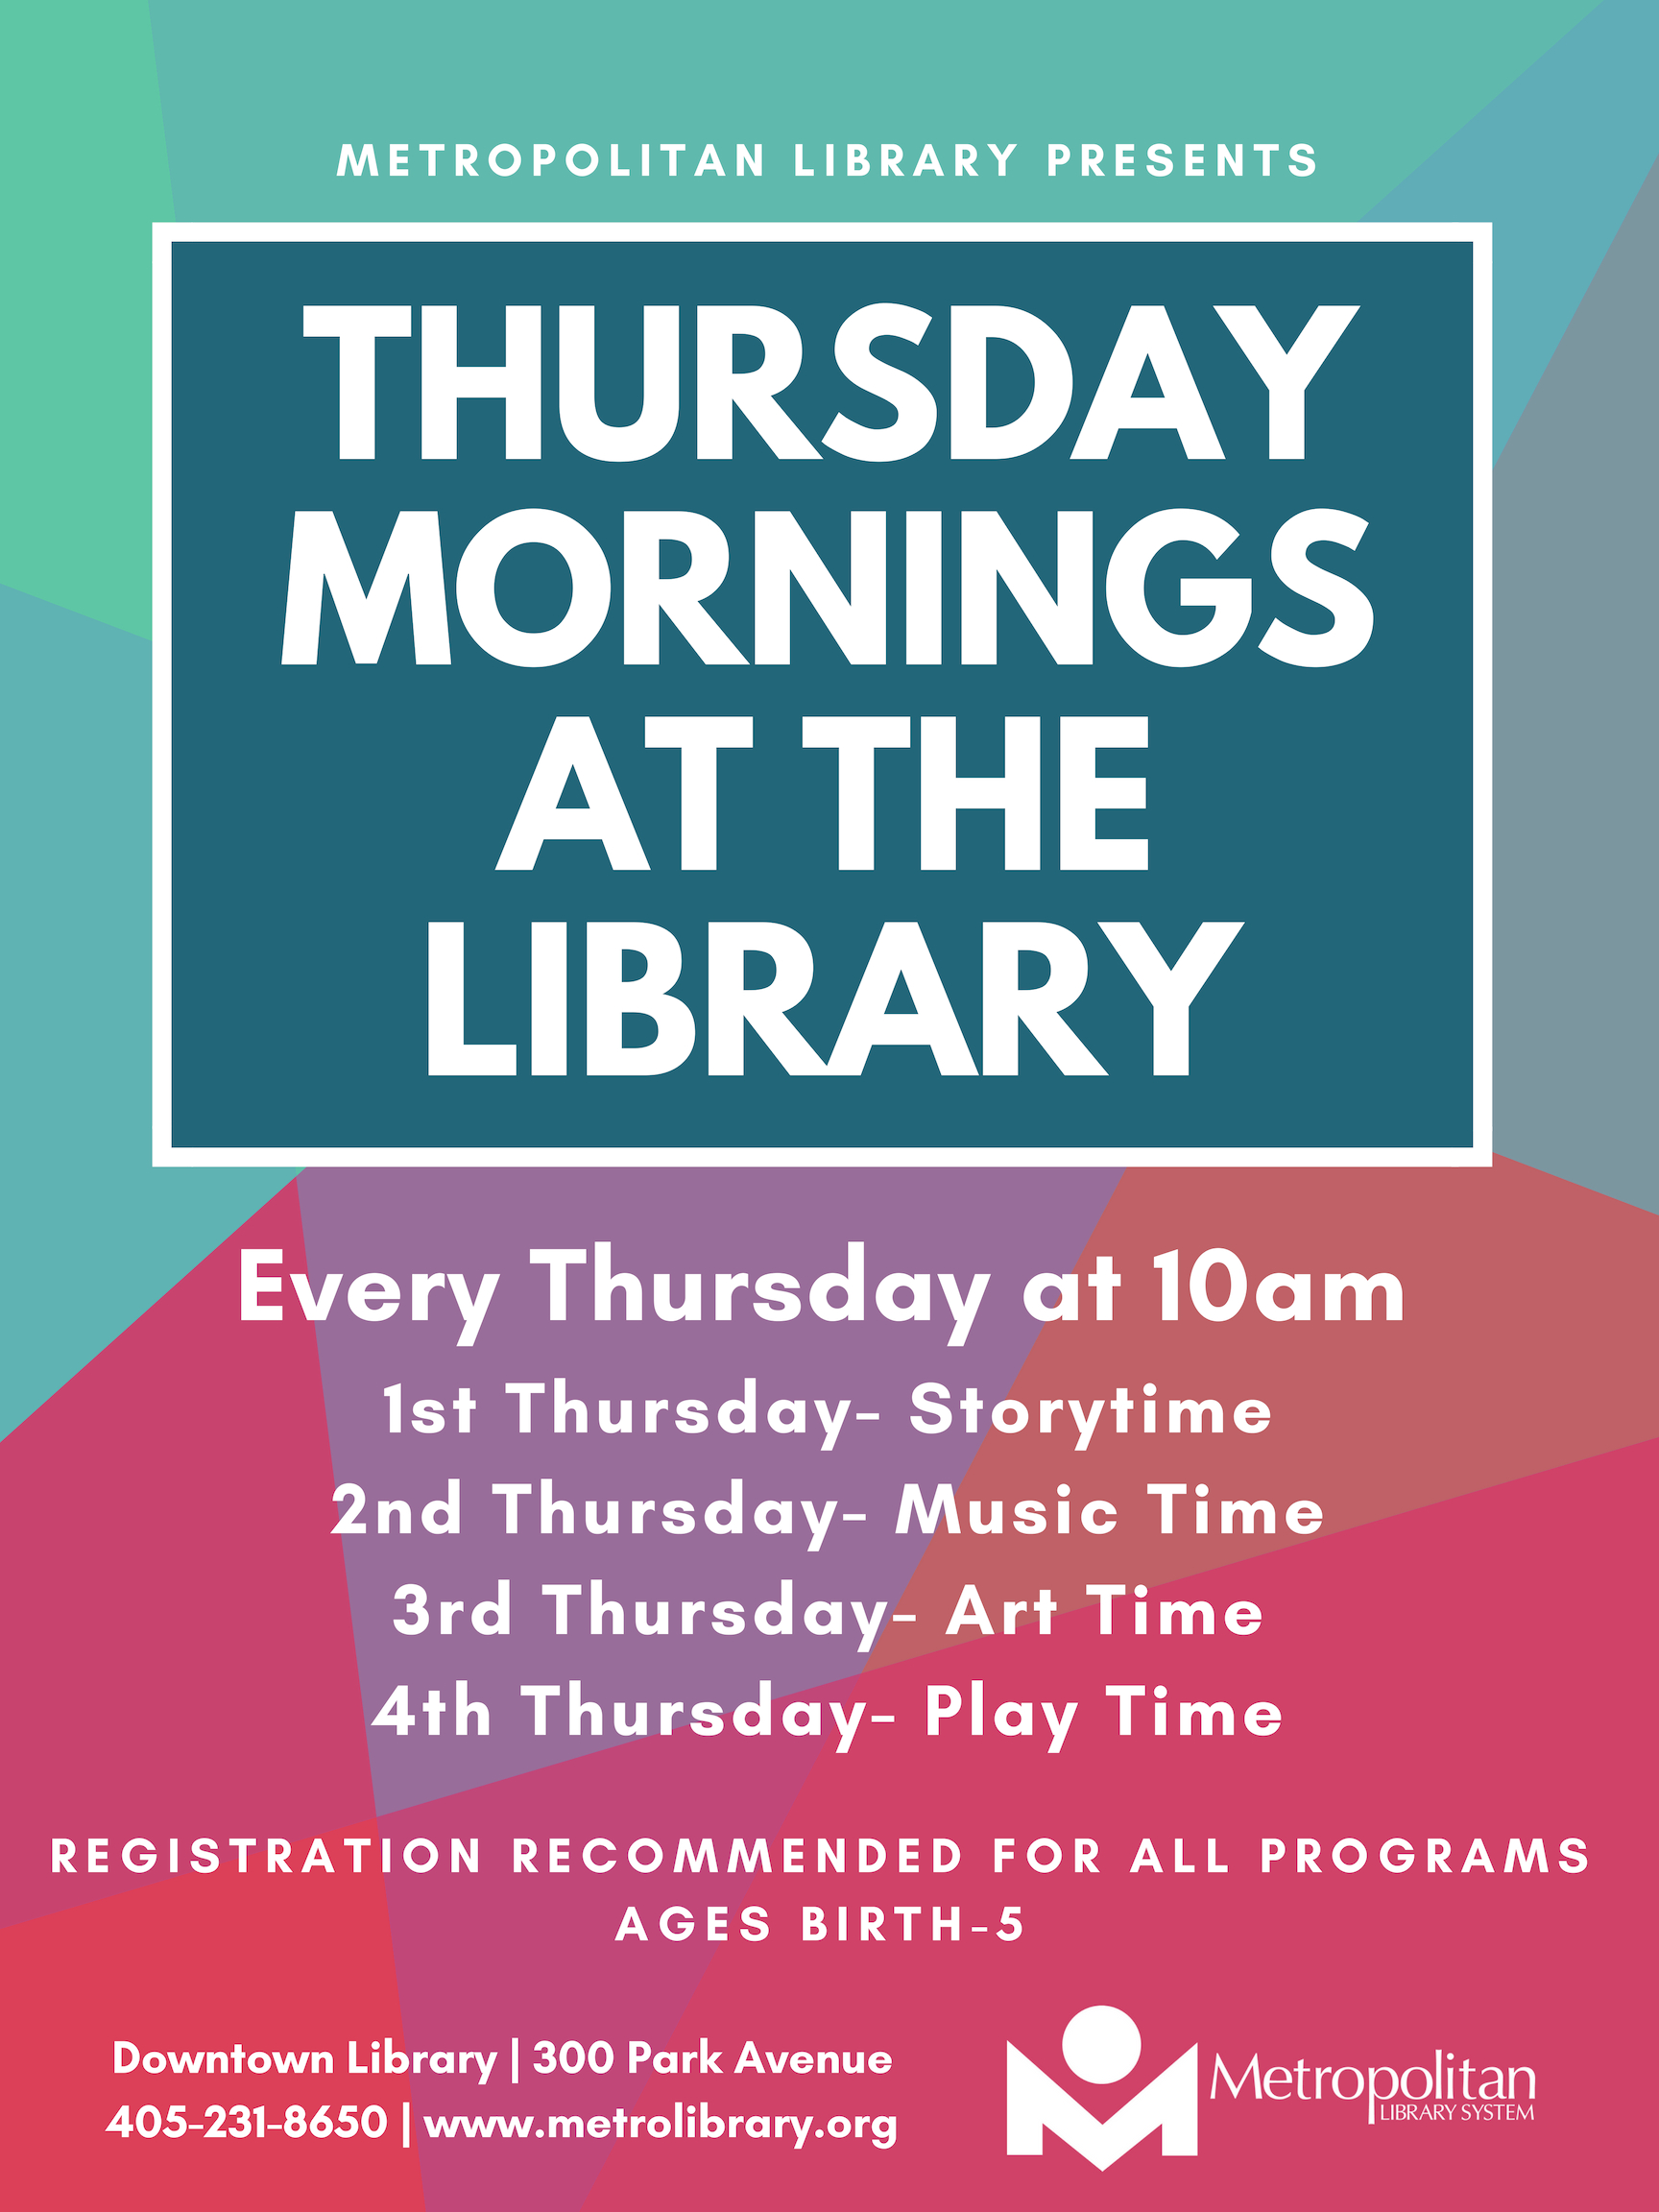 Thursday Mornings at the Library